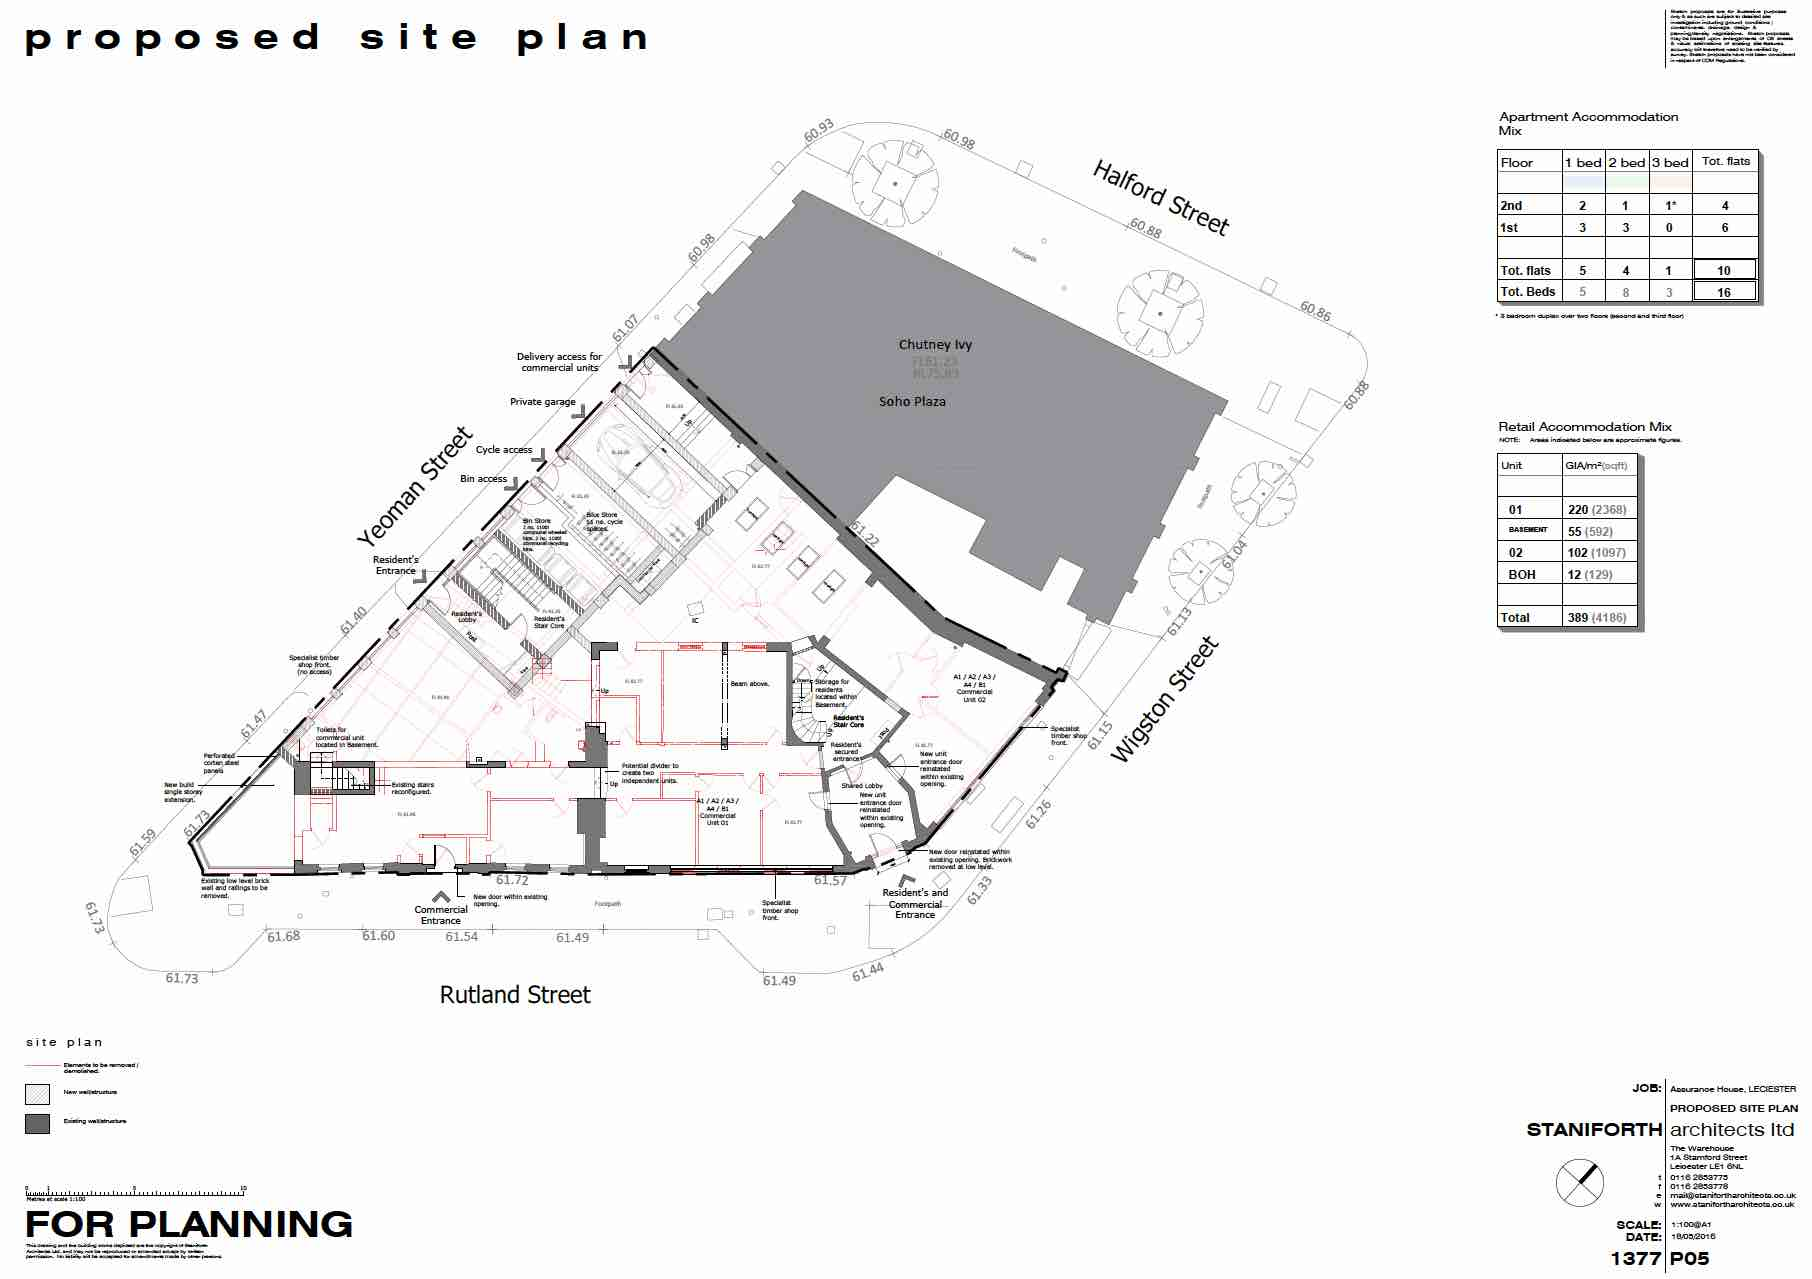 The Goliath Group development Proposed Site Plan